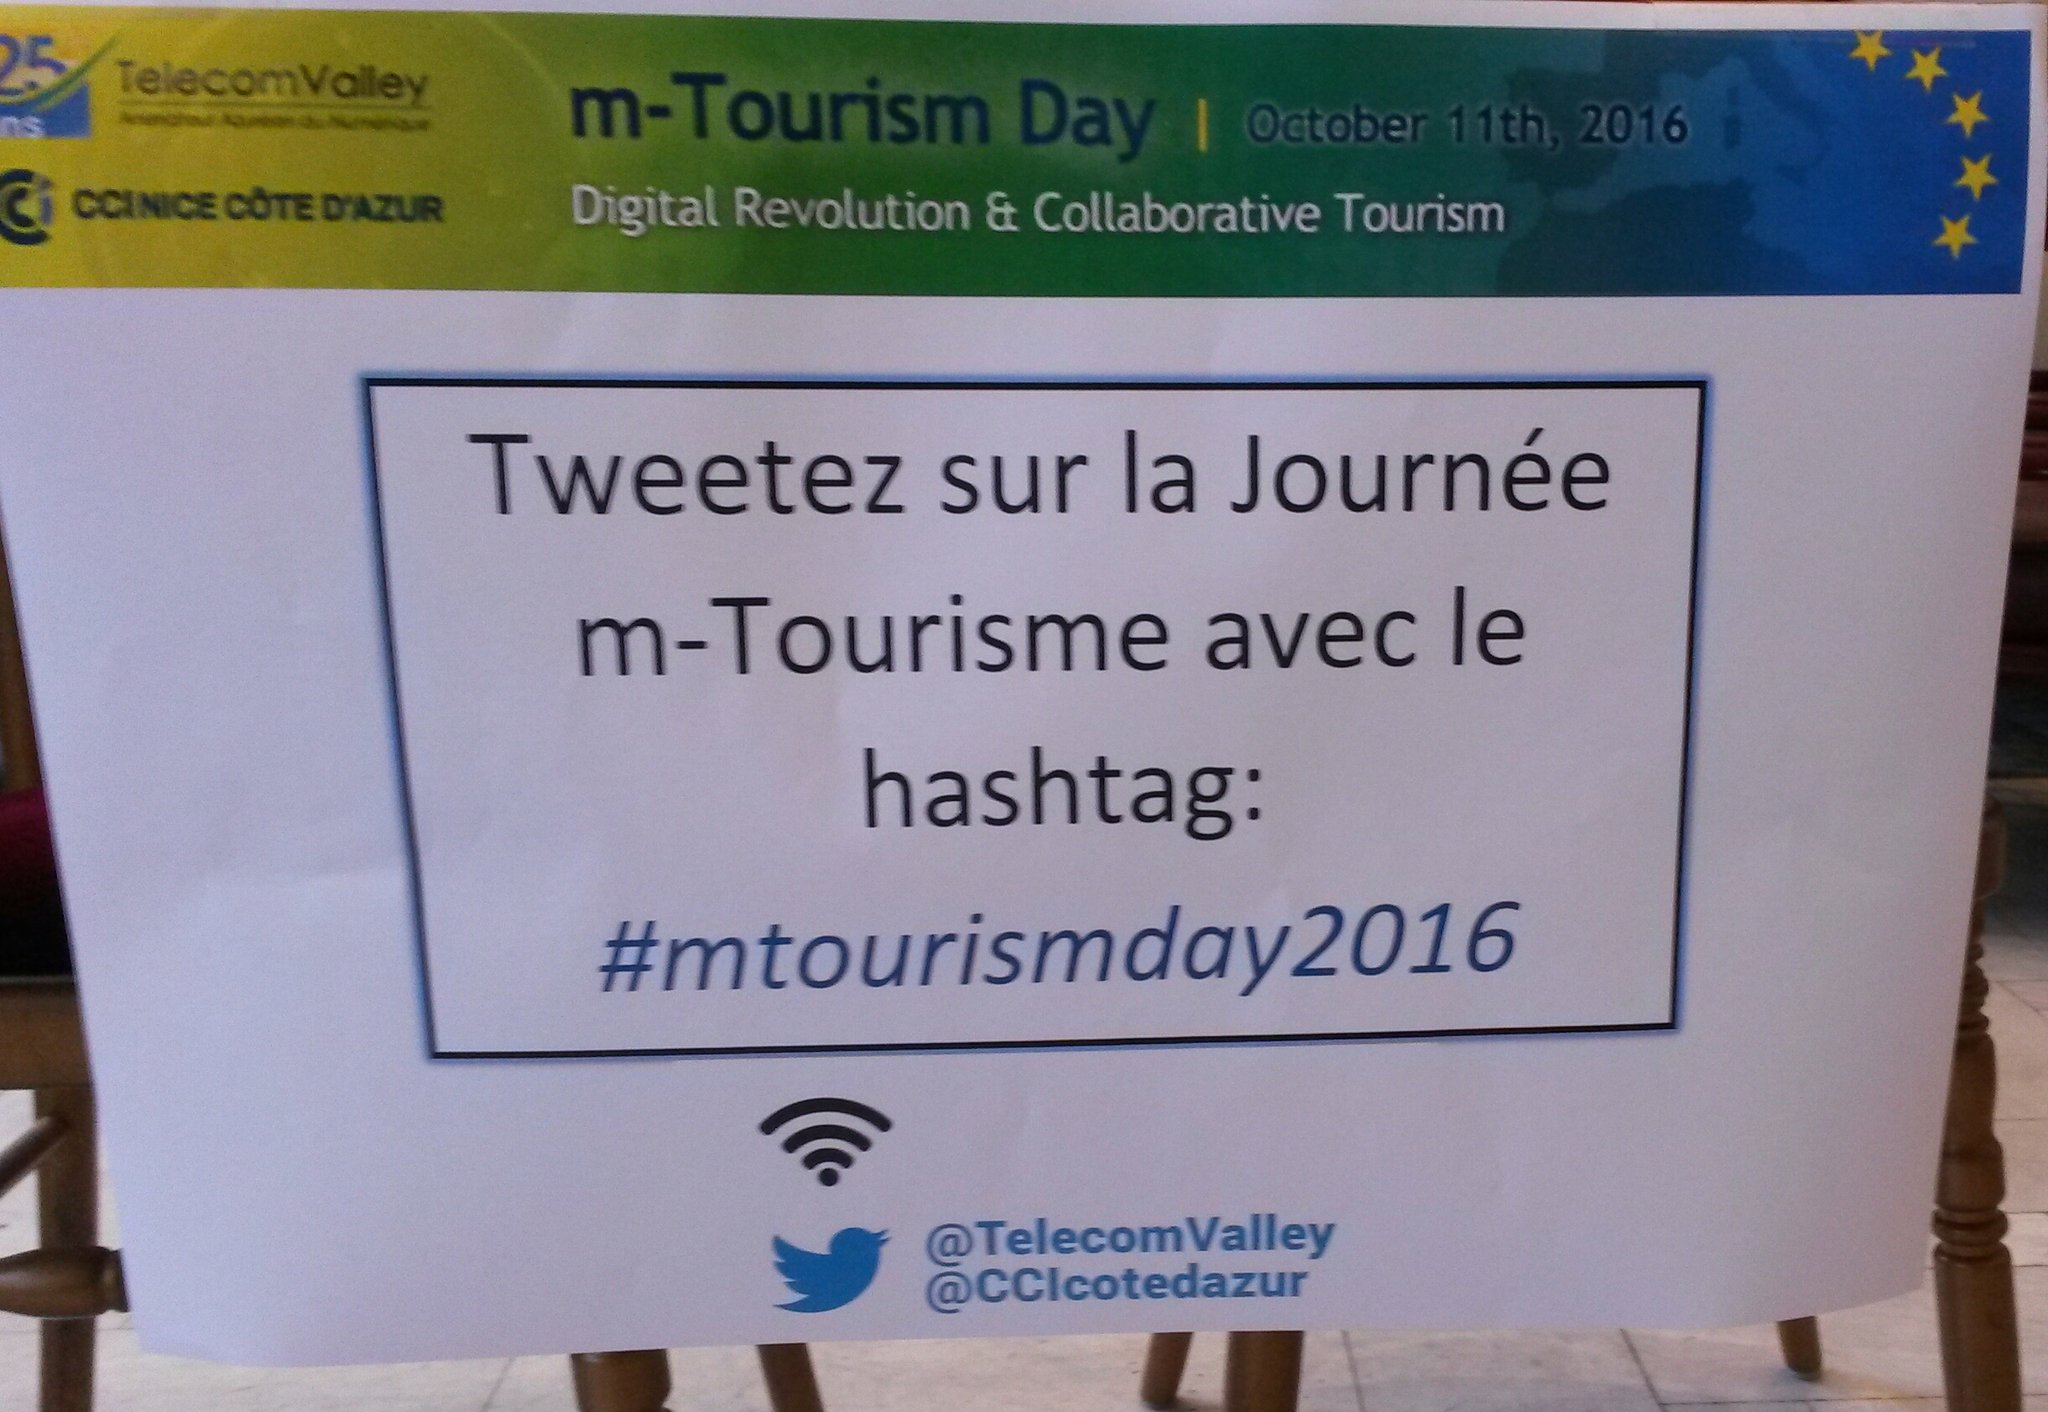 #mtourismday2016 @CCIcotedazur ..ça va commencer! https://t.co/WtfJbGT3iY